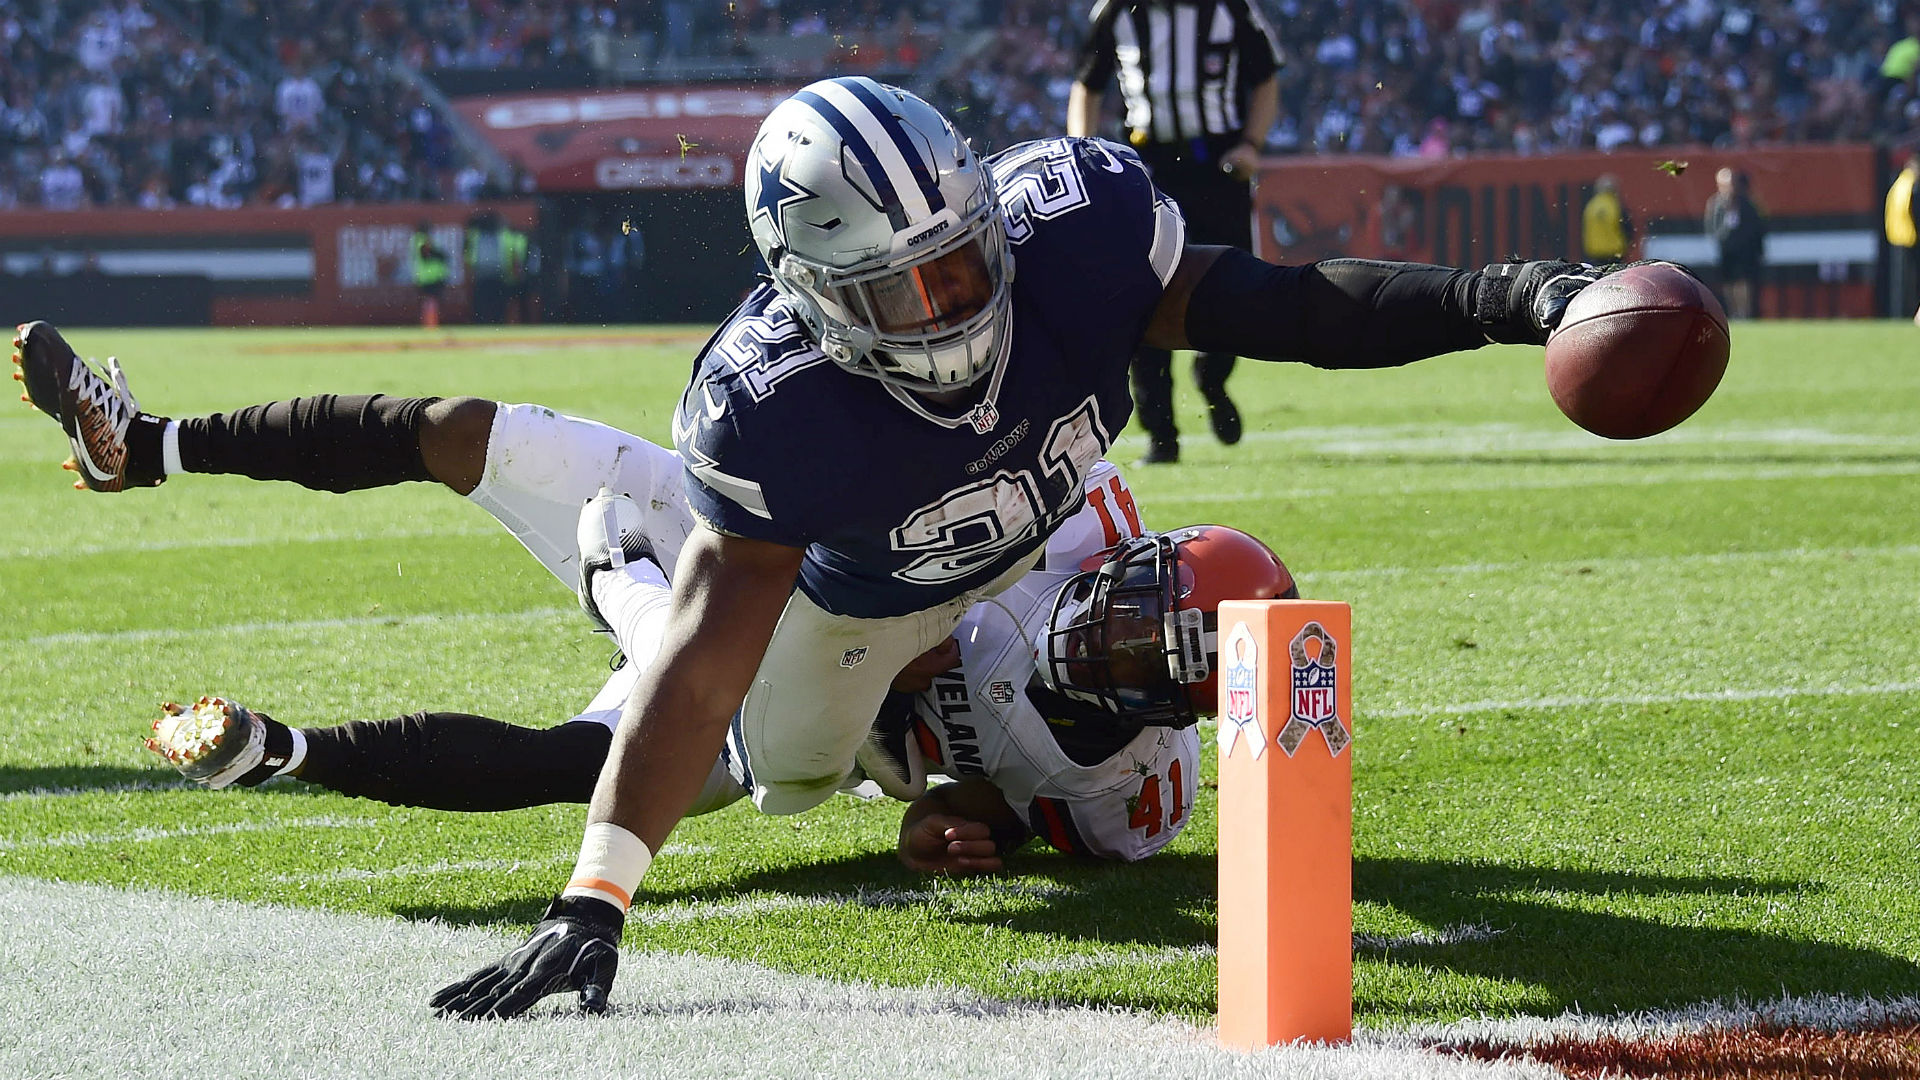 Cowboys Headlines - #FantasyFootball Week 10 #Sauce and Waiver Wire Adds 6